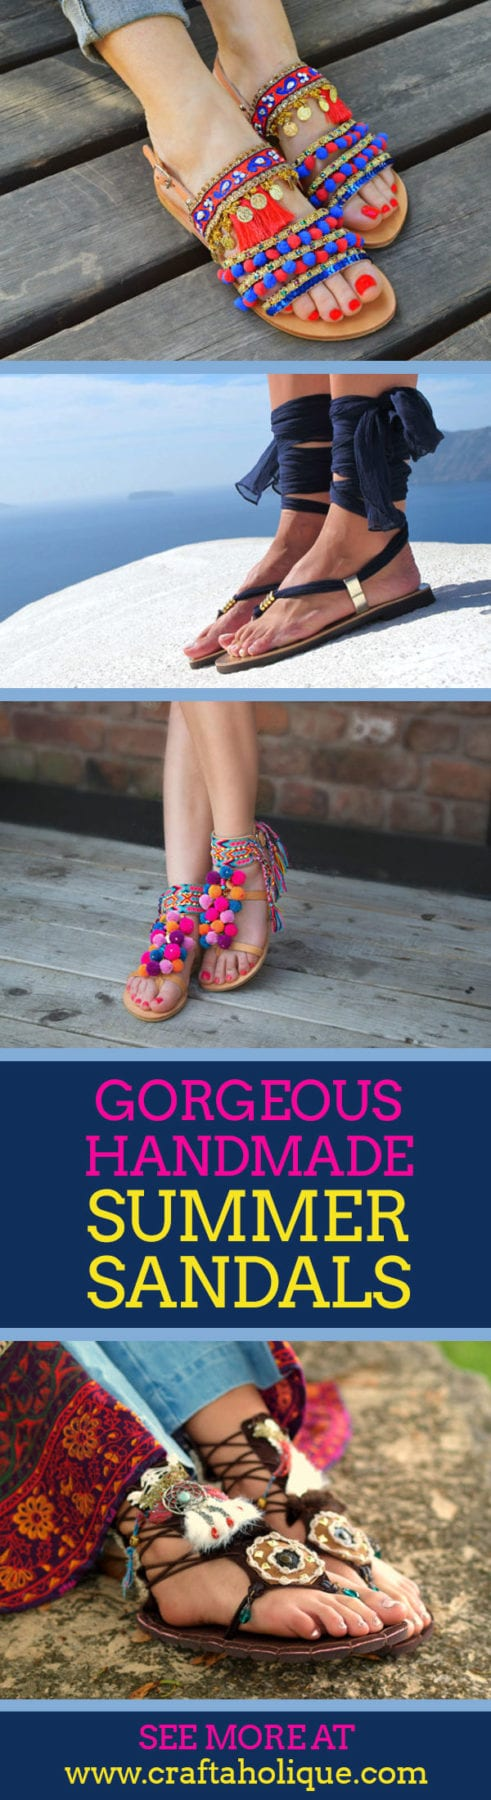 Beautiful handmade summer sandals from Etsy - Handmade Showcase from Craftaholique